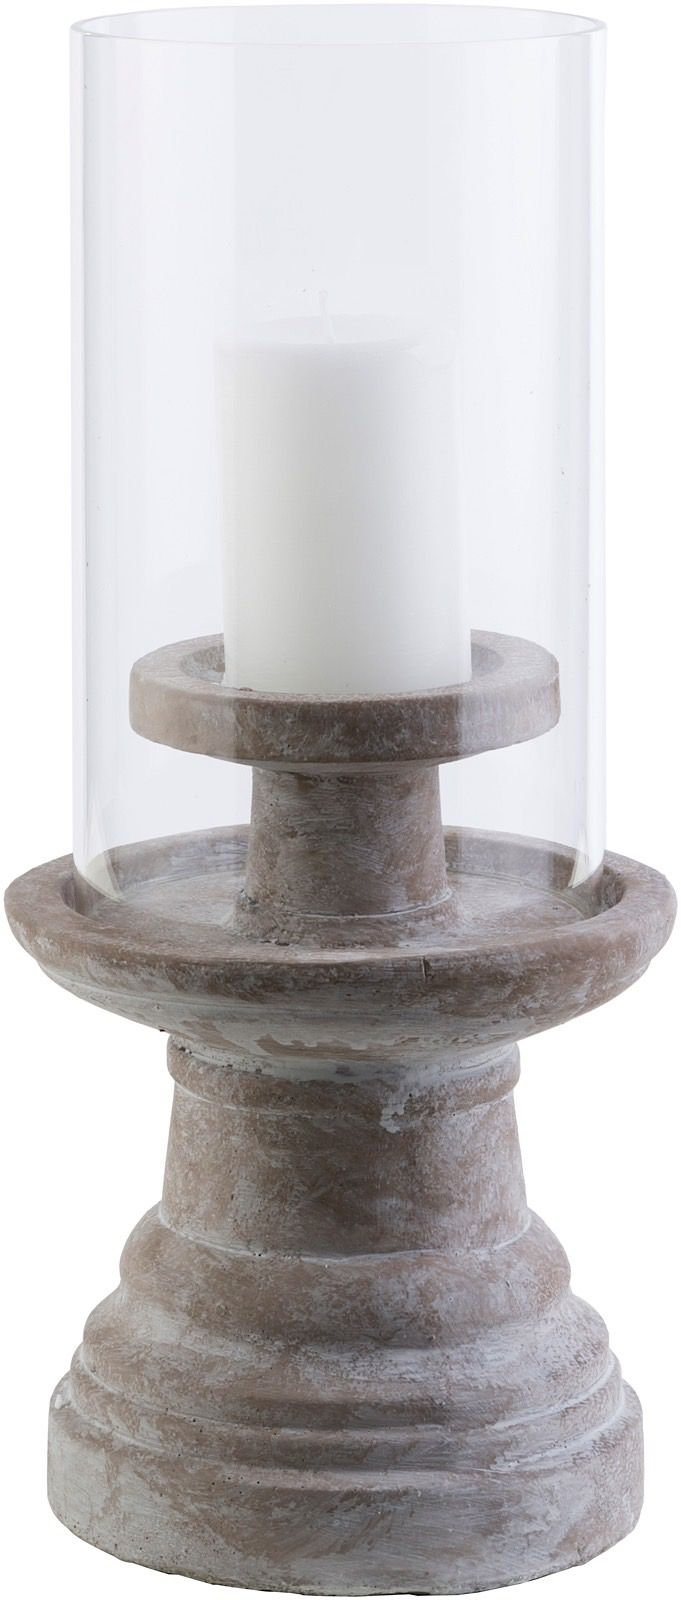 surya odette contemporary candle holders & lanterns